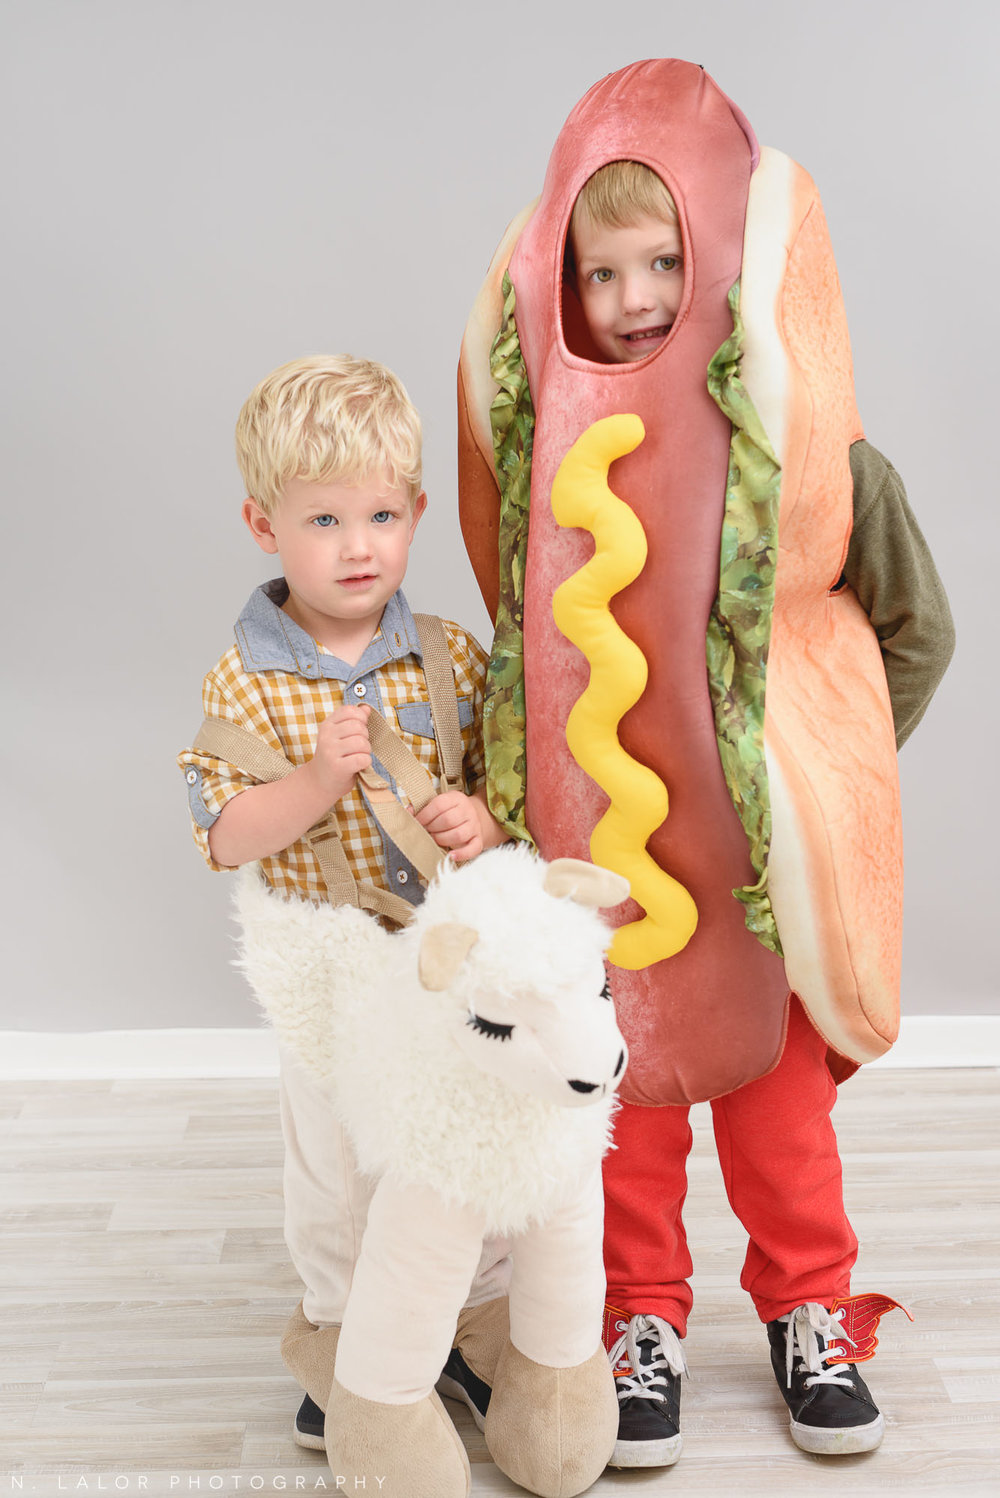 Llama and hot dog together. Halloween Kids Portrait by N. Lalor Photography. Greenwich, Connecticut.